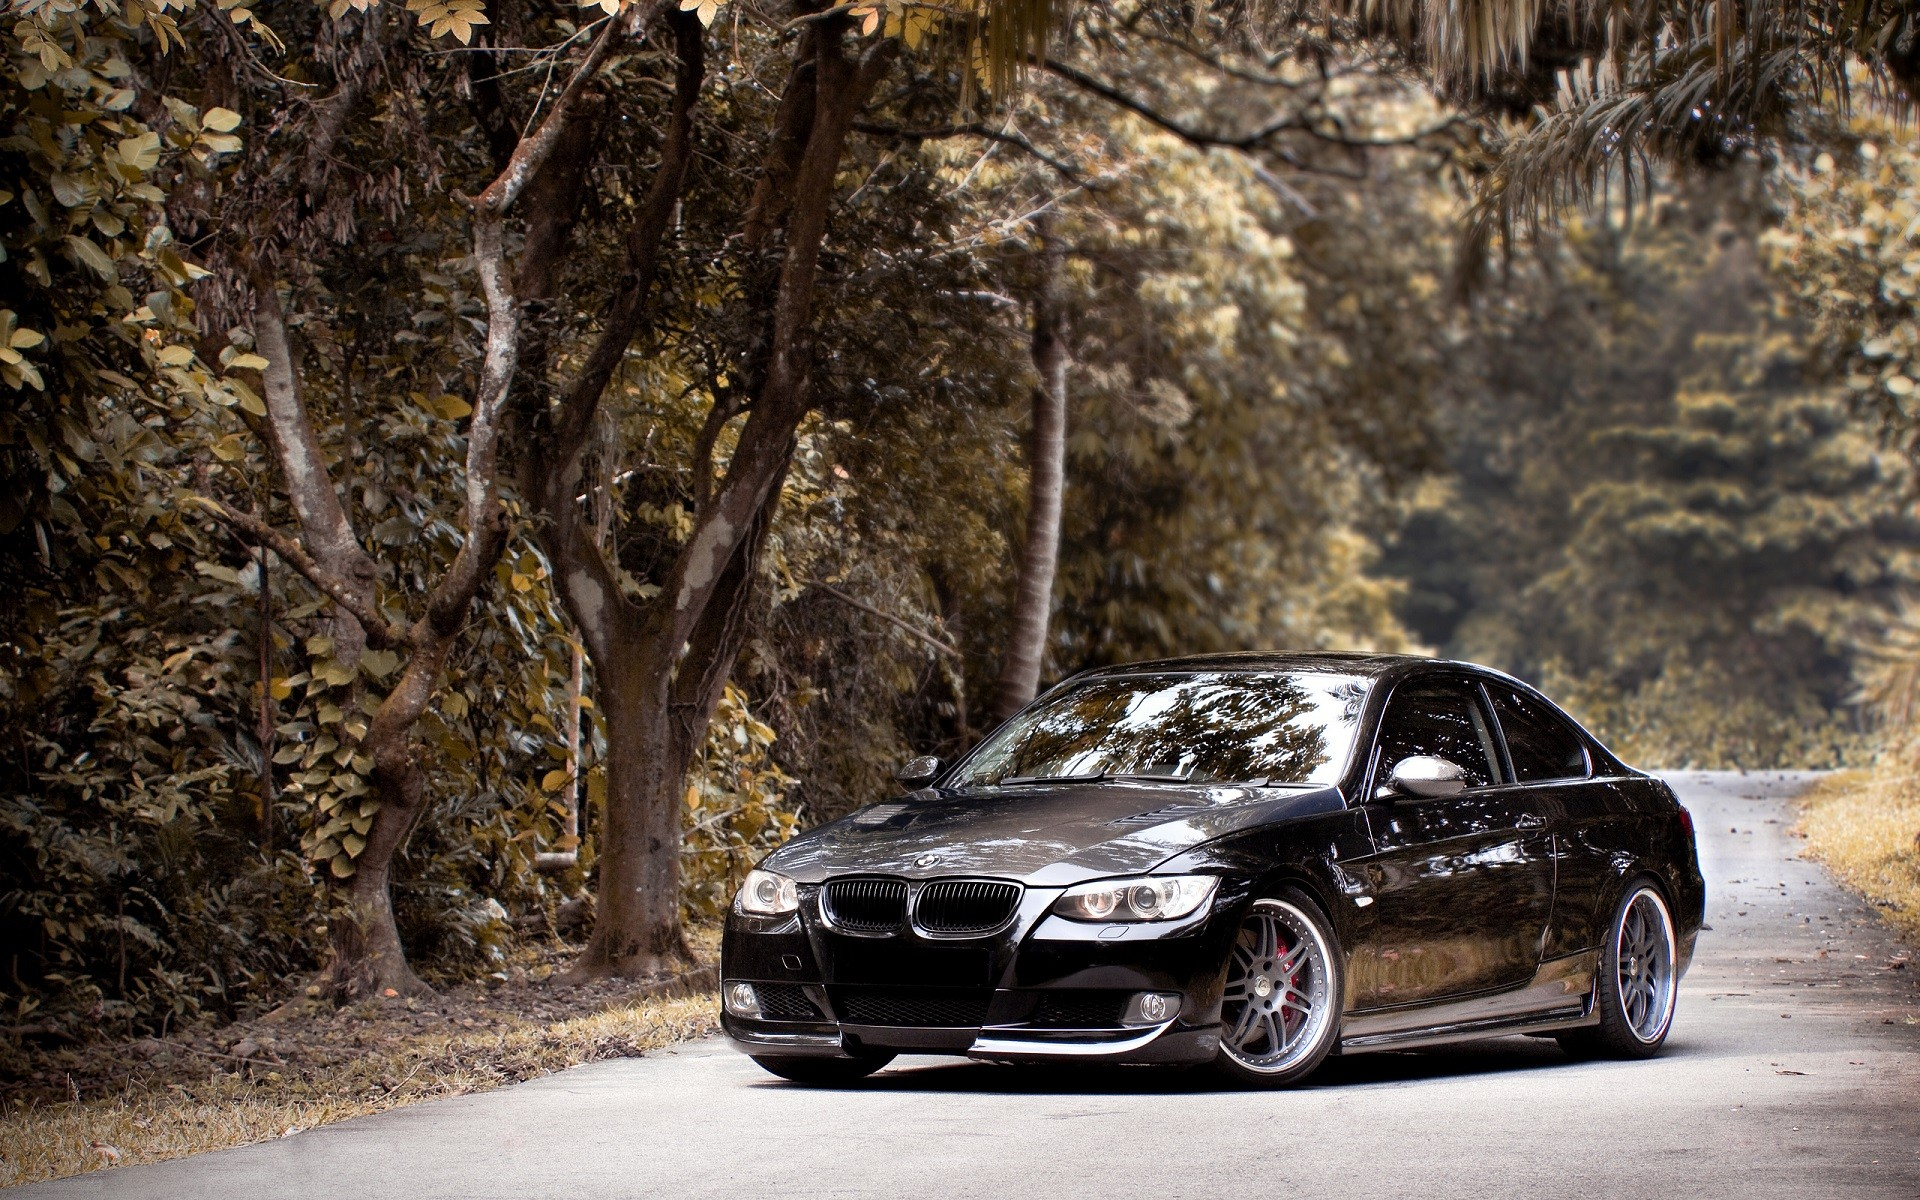 Vintage Car Wallpaper 1080p Car Bmw Road Trees Forest Bmw E92 Bmw 3 Series